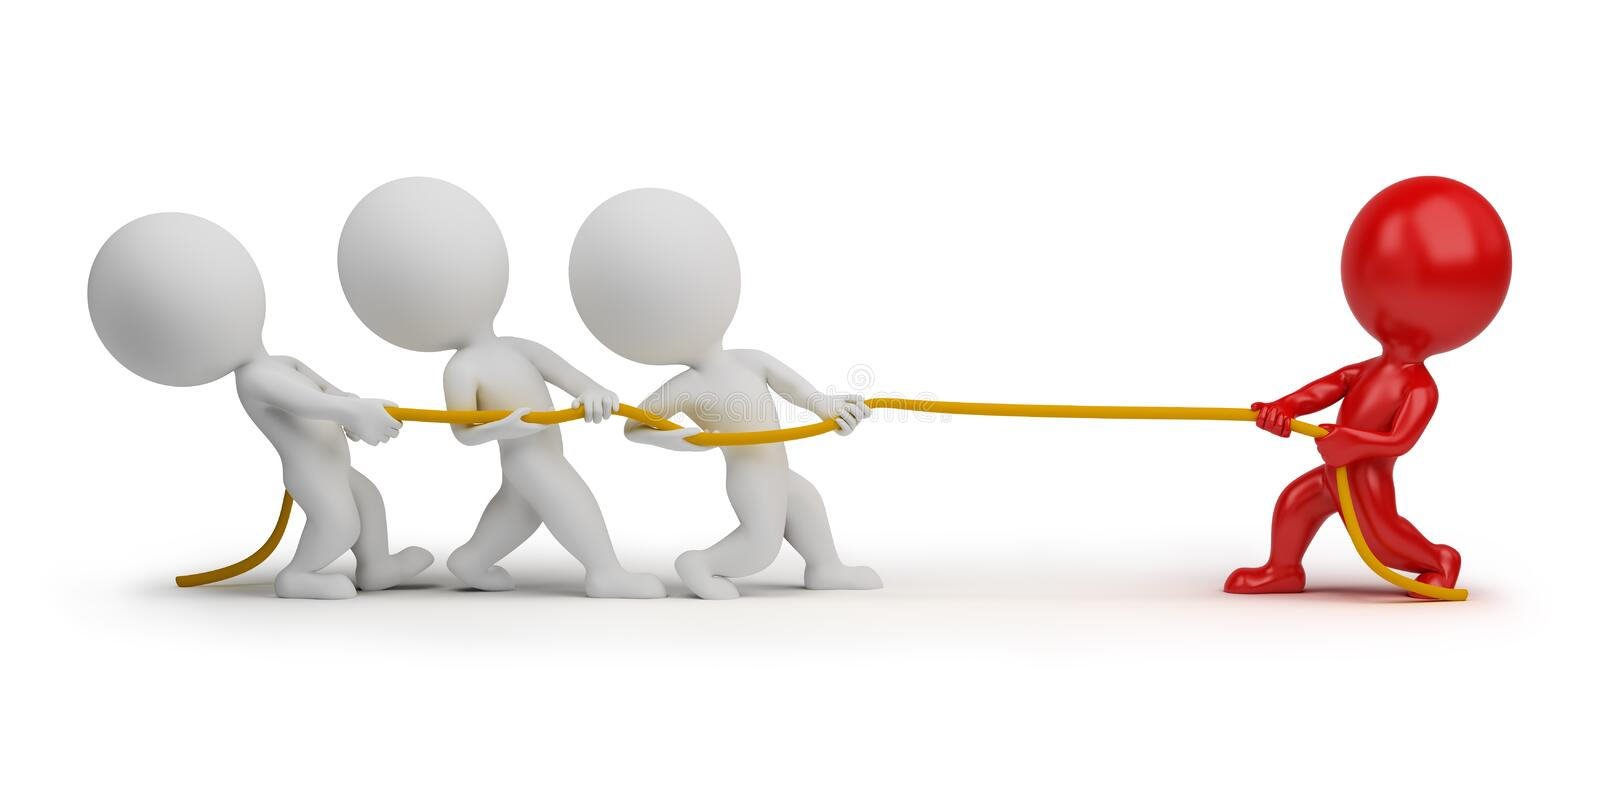 Download 3d Small People - Rope Pulling Stock Illustration - Image: 16949567